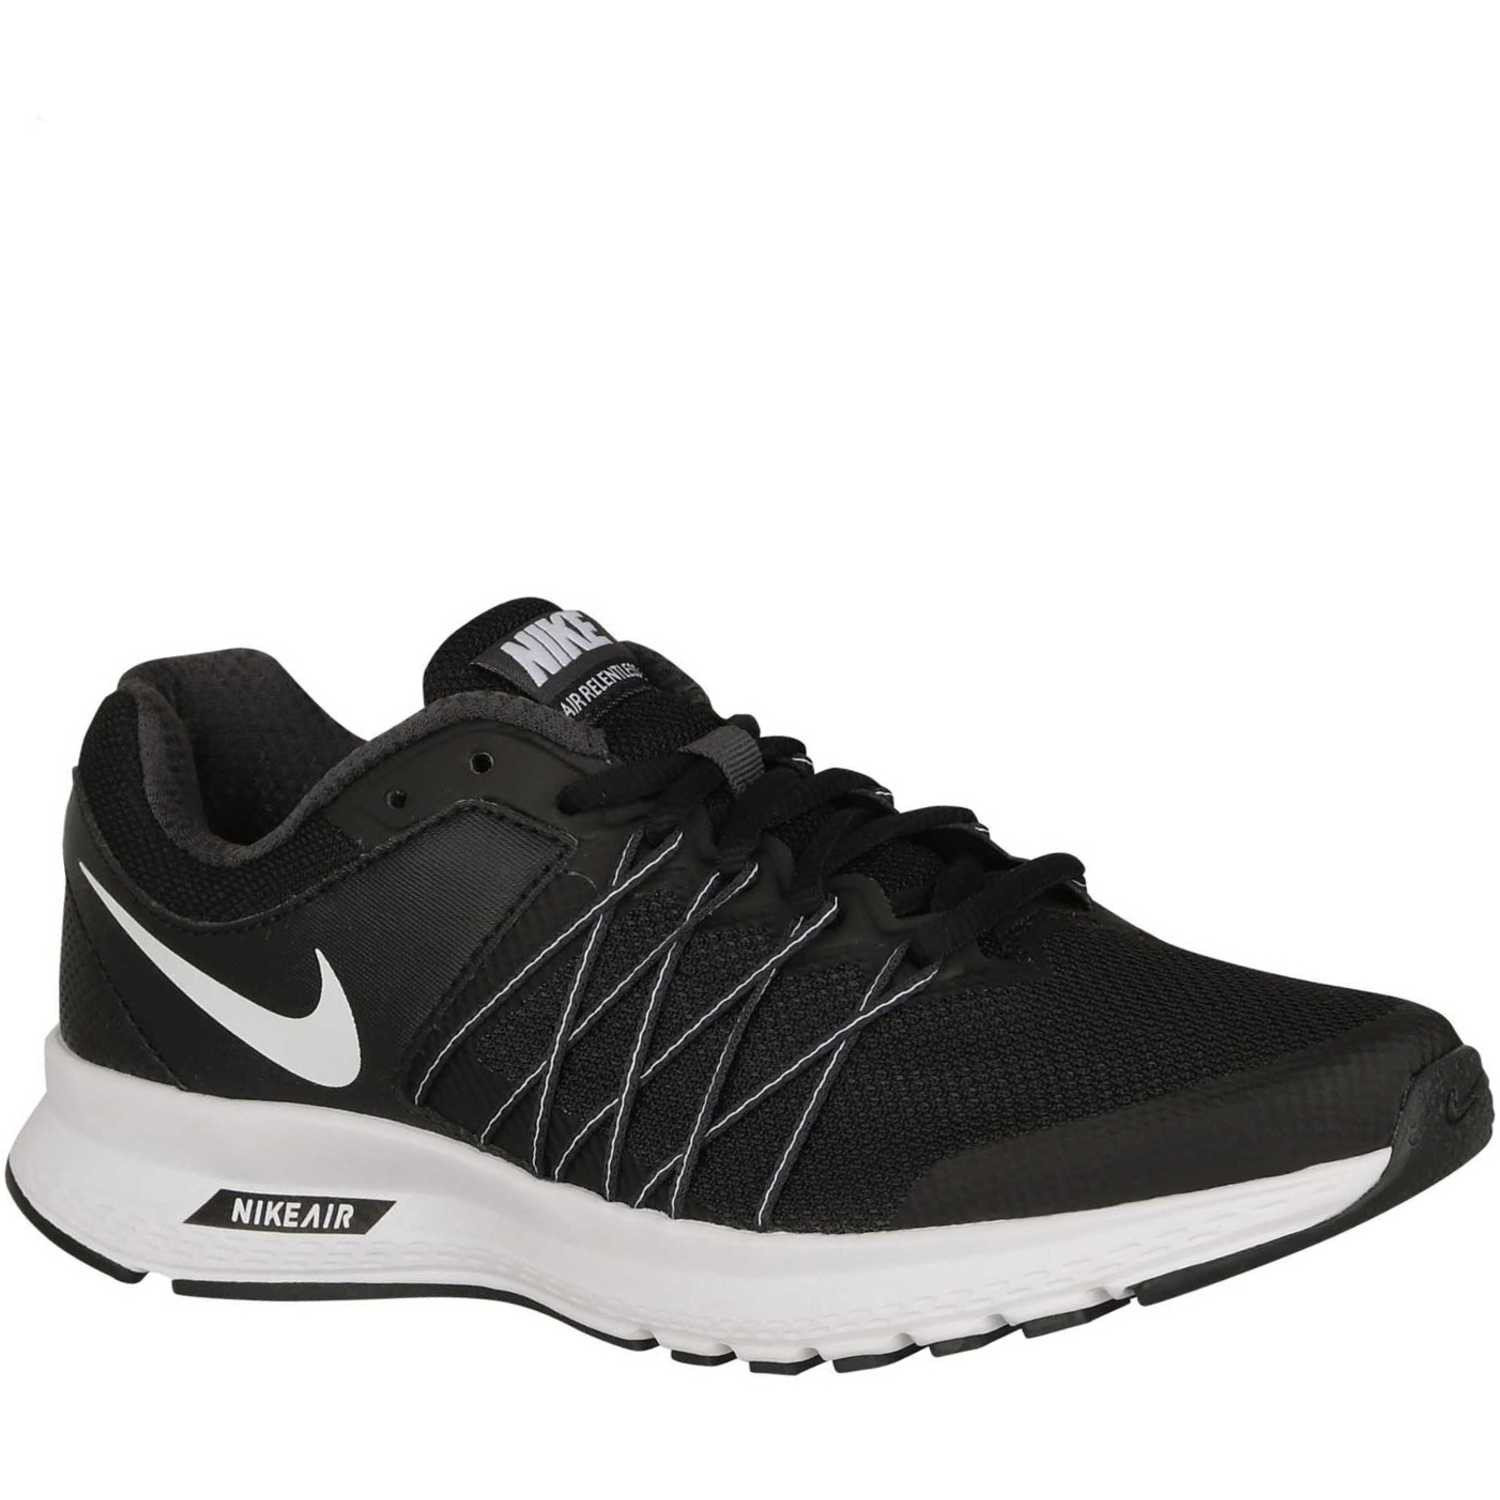 Nike air relentless 6 msl Azul blanco Trail Running